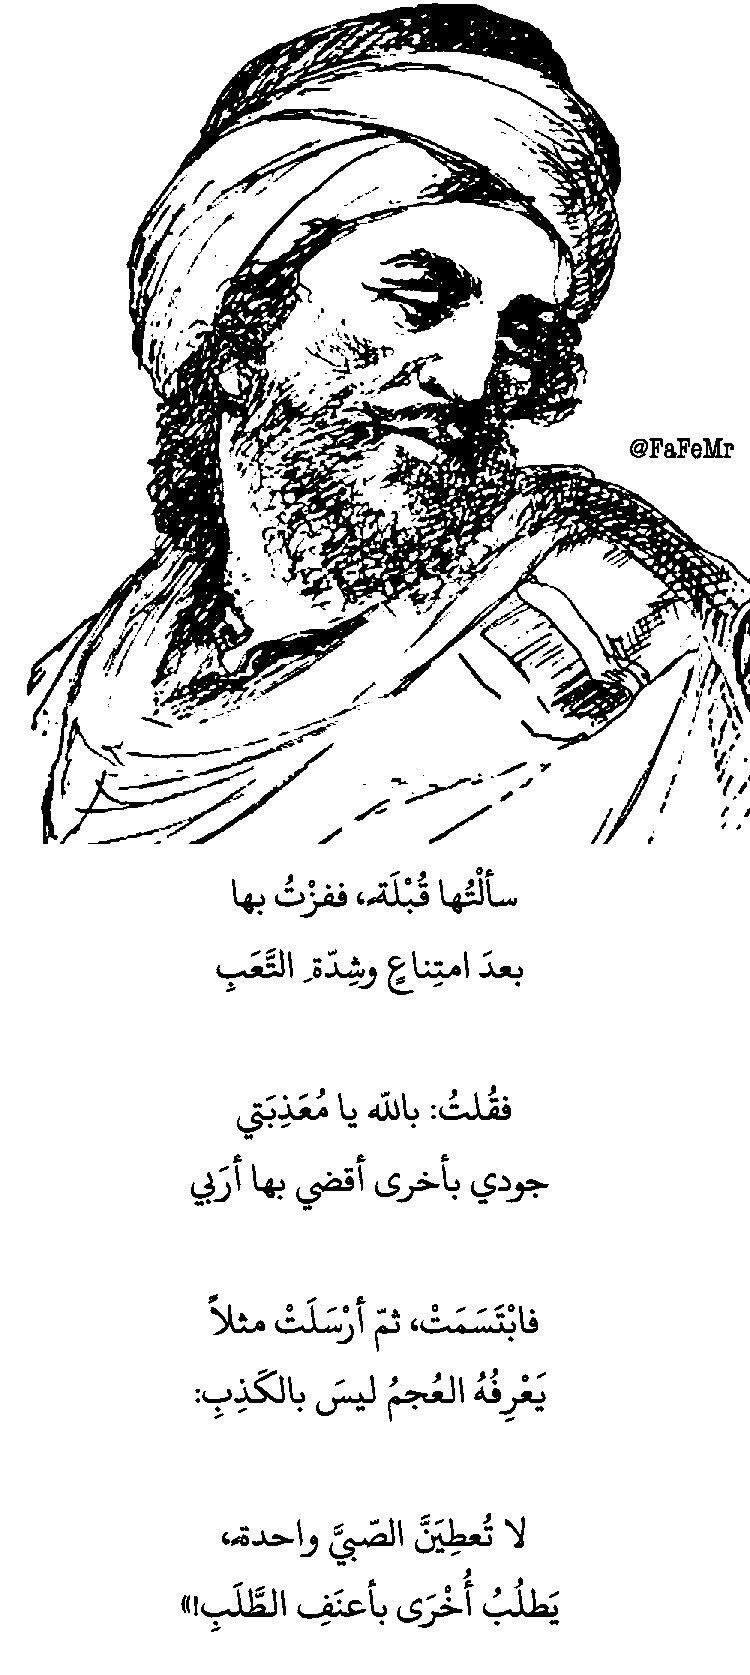 Pin By Sezar King On Alaa Dah Arabic Poetry Arabic Quotes Words